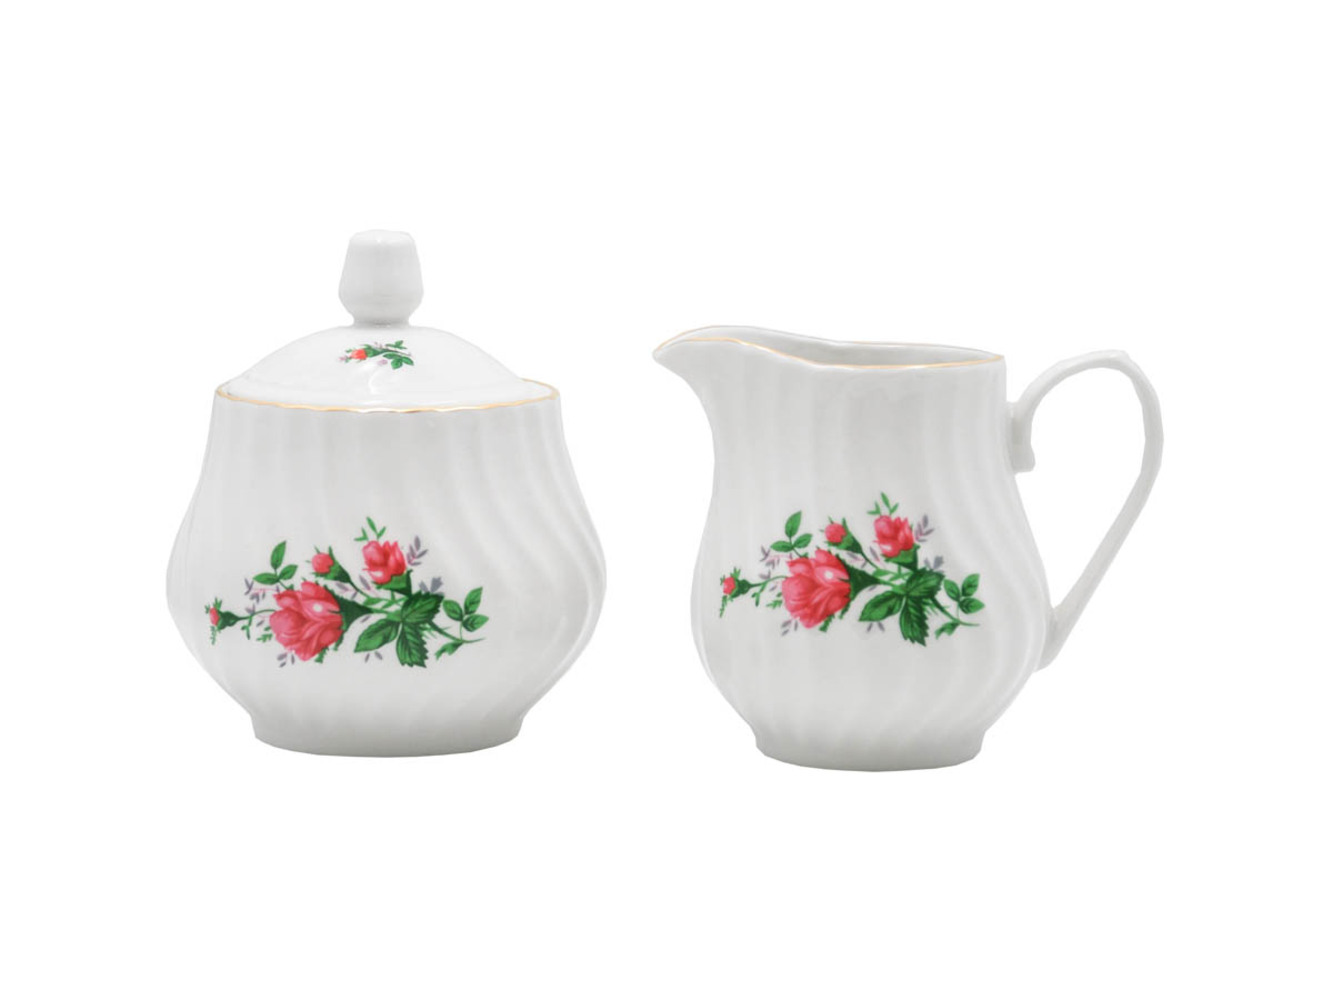 Vintage Rose Set of 2 Sugar & Creamer